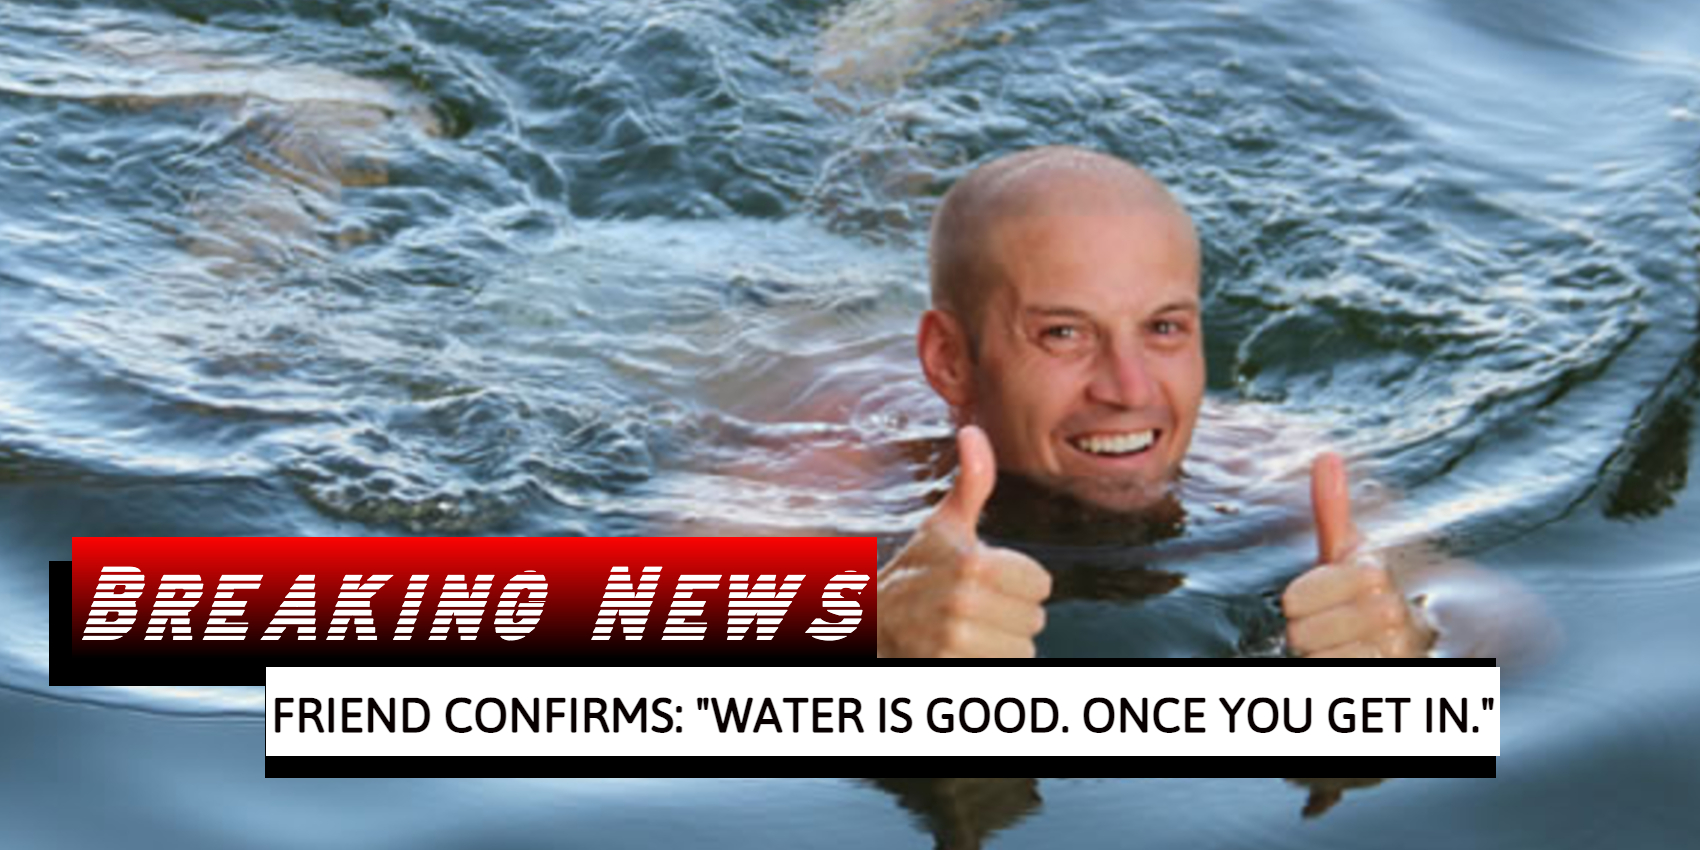 Man swims with thumbs up